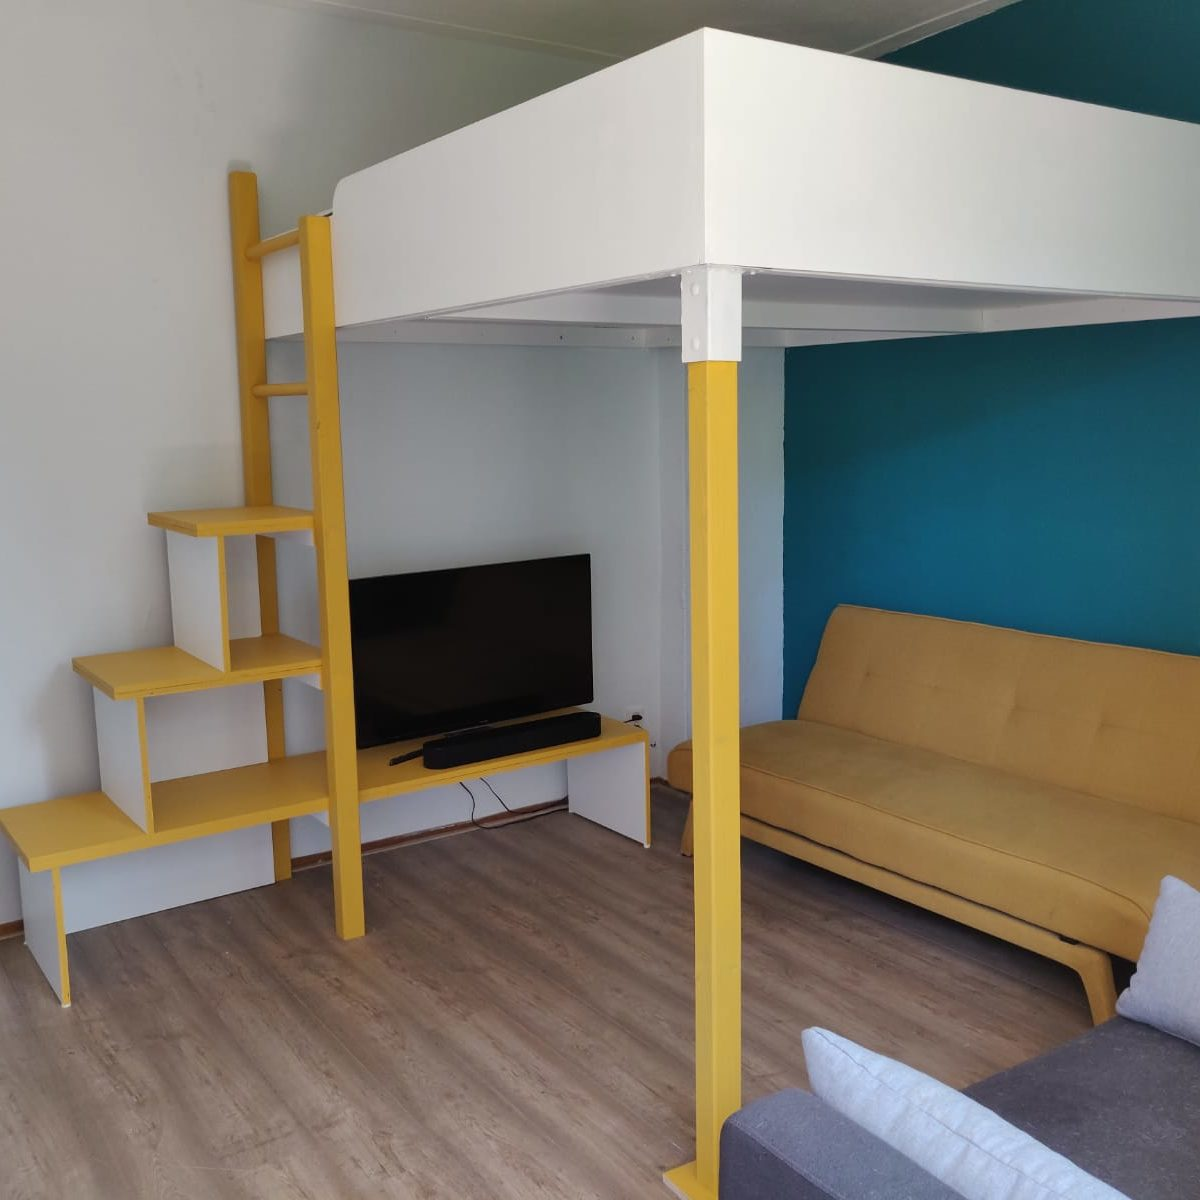 DIY-Loft bed -Carlota- by Marvin